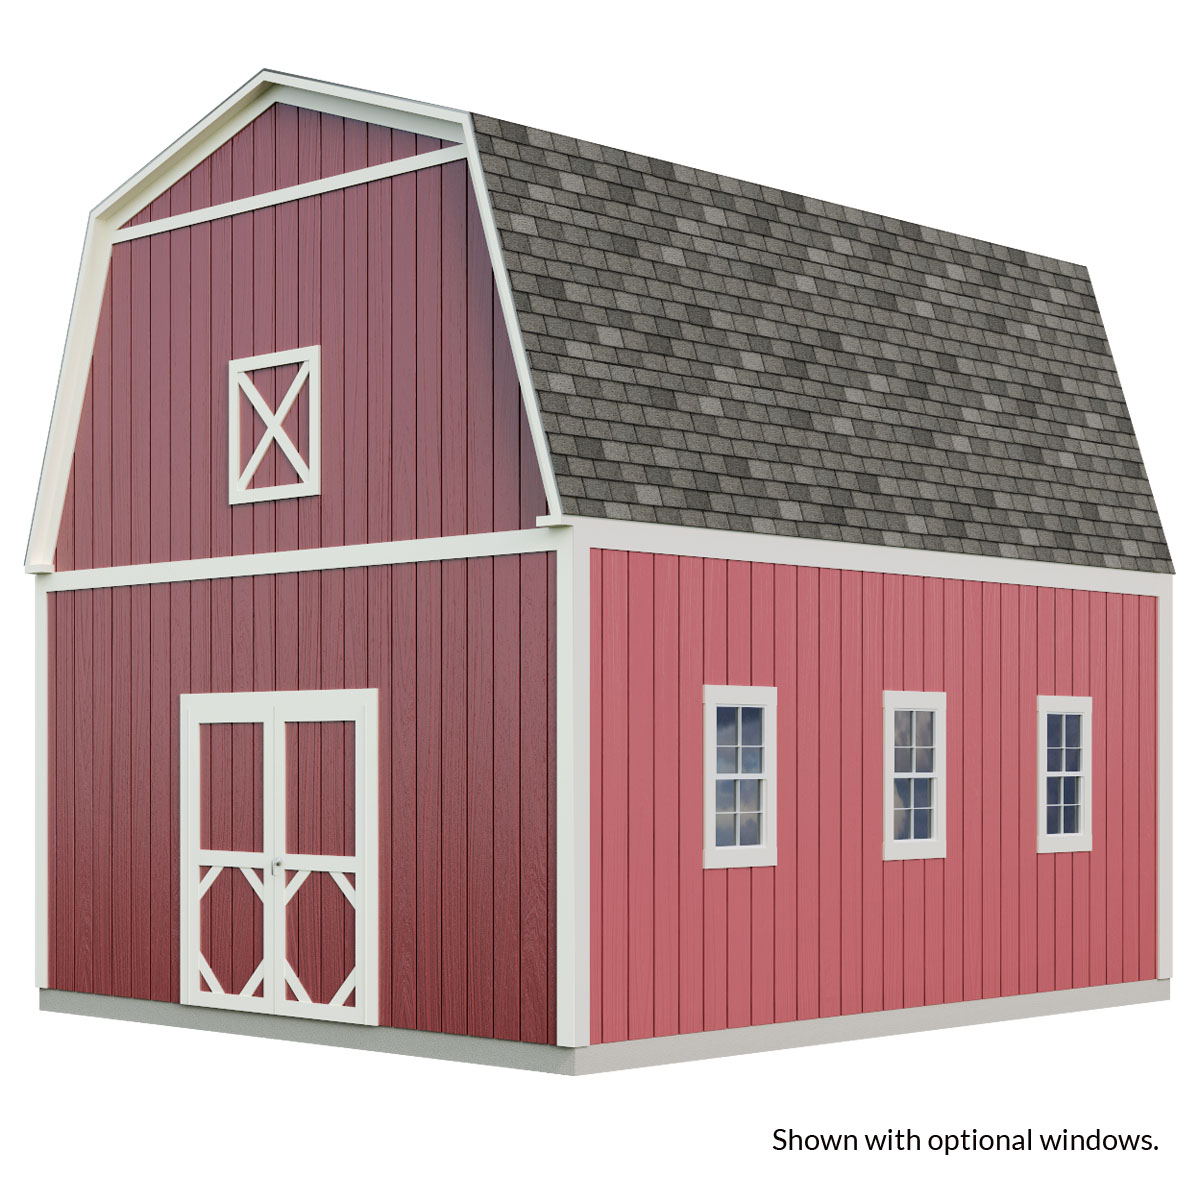 Two Story Shed with Stairs for Storage or Workshop | Everest on 40x60 shop plans, 30x40x12 metal building floor plans, steel homes floor plans, residential metal building floor plans, shed home floor plans, morton building home floor plans, 40x60 house floor plans, 60x100 metal building floor plans, steel building home plans, metal house plans, 20x30 house floor plans,